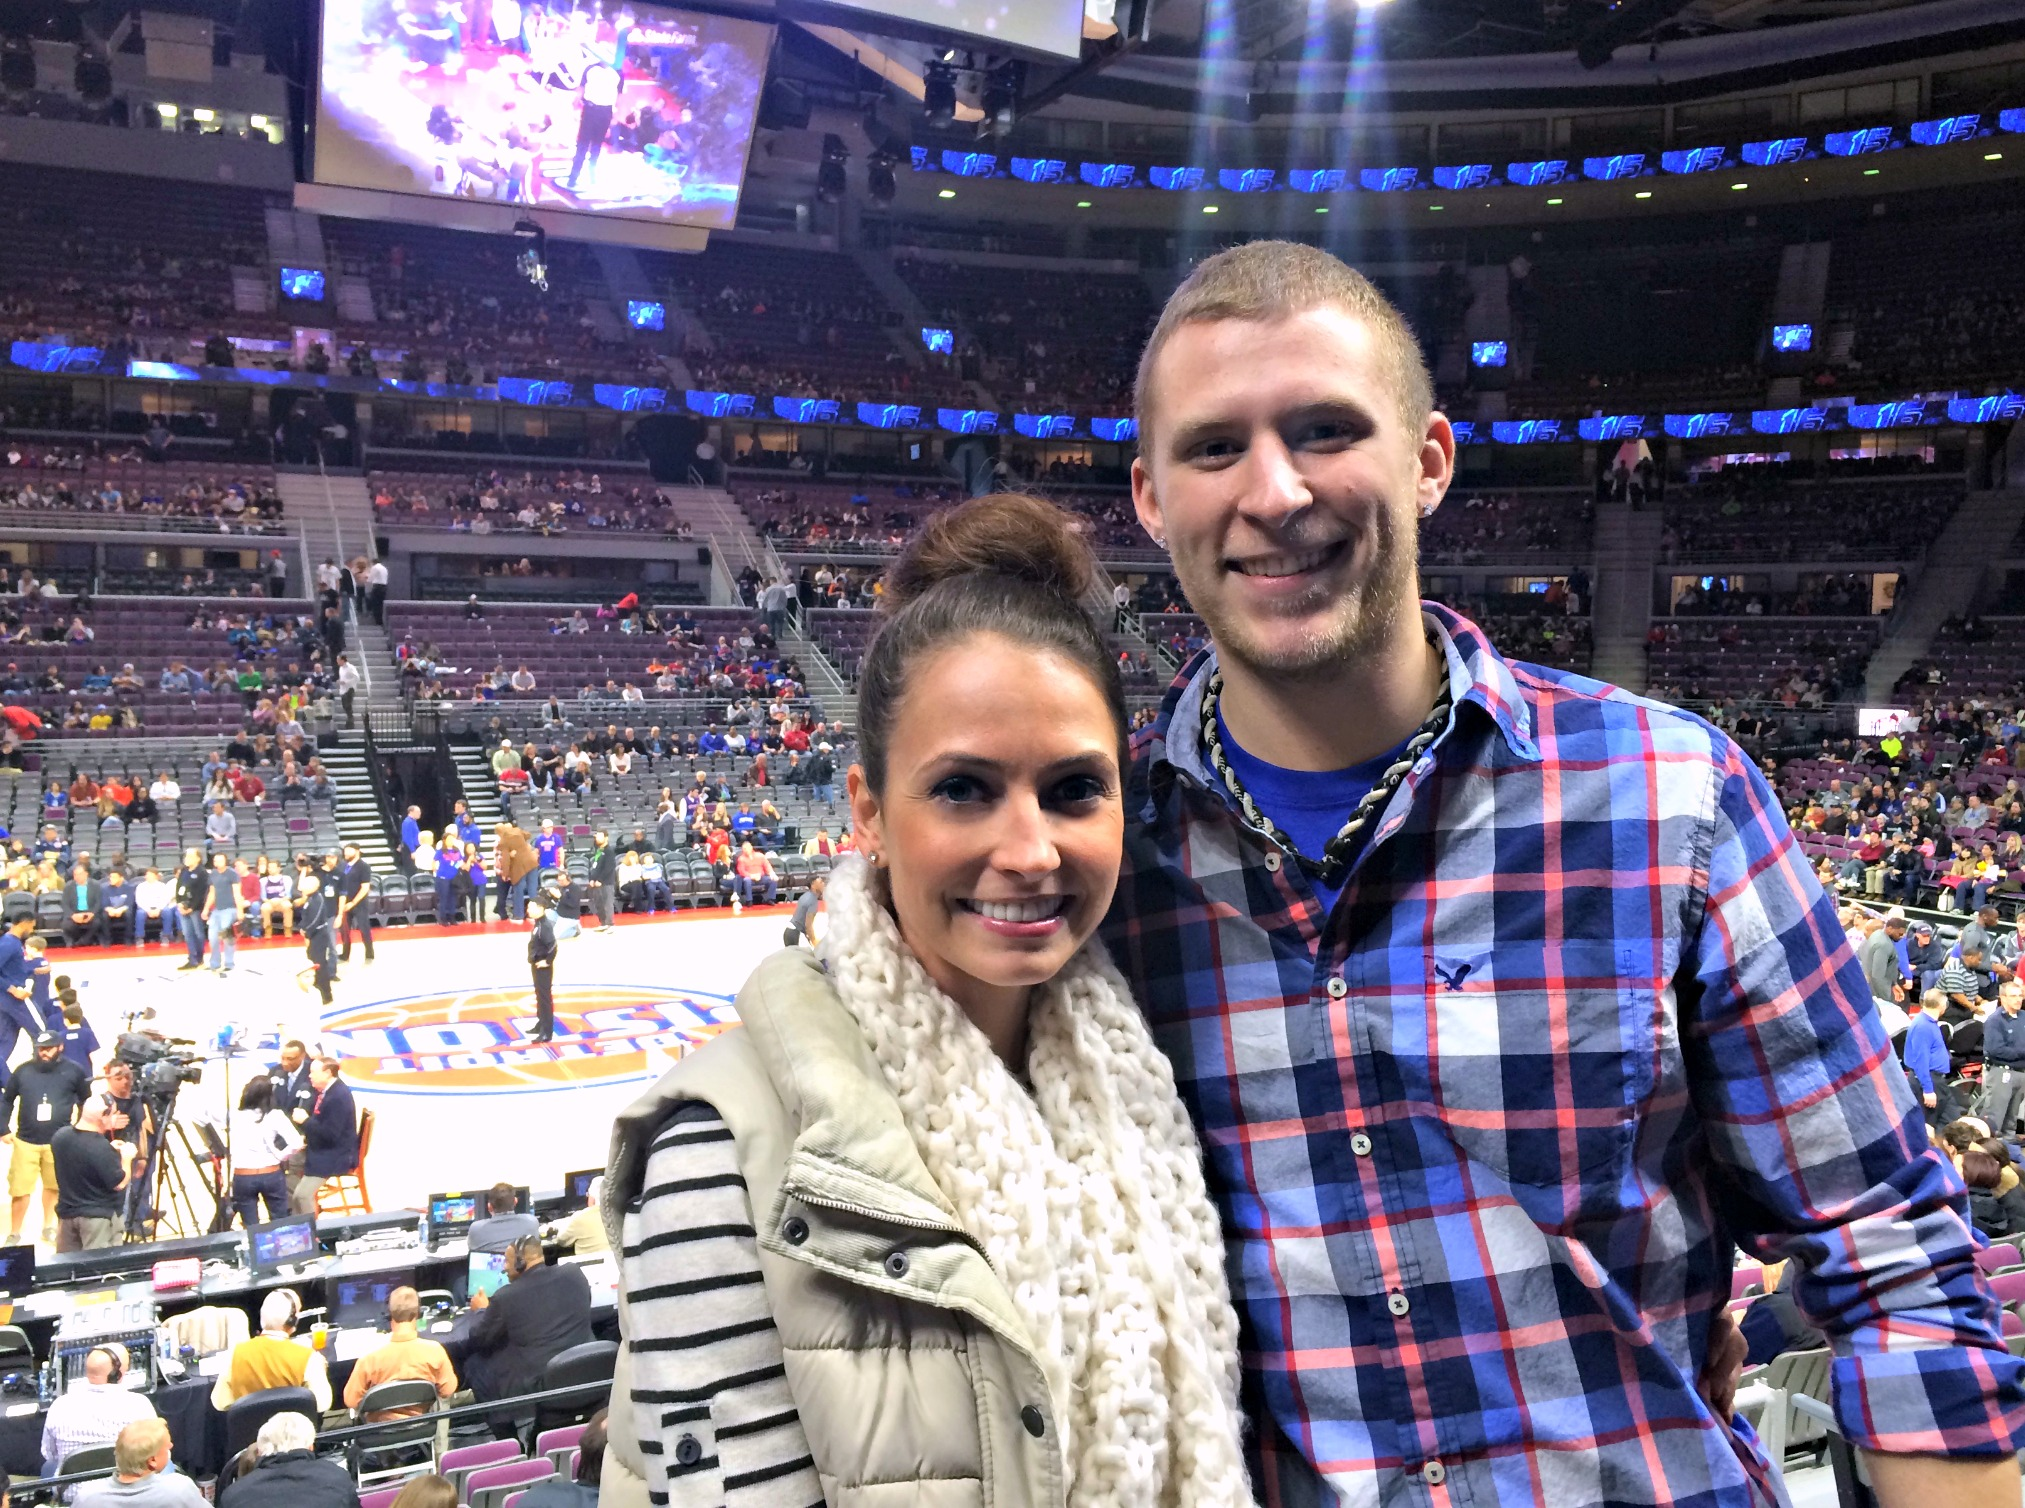 me and connor at the pistons game